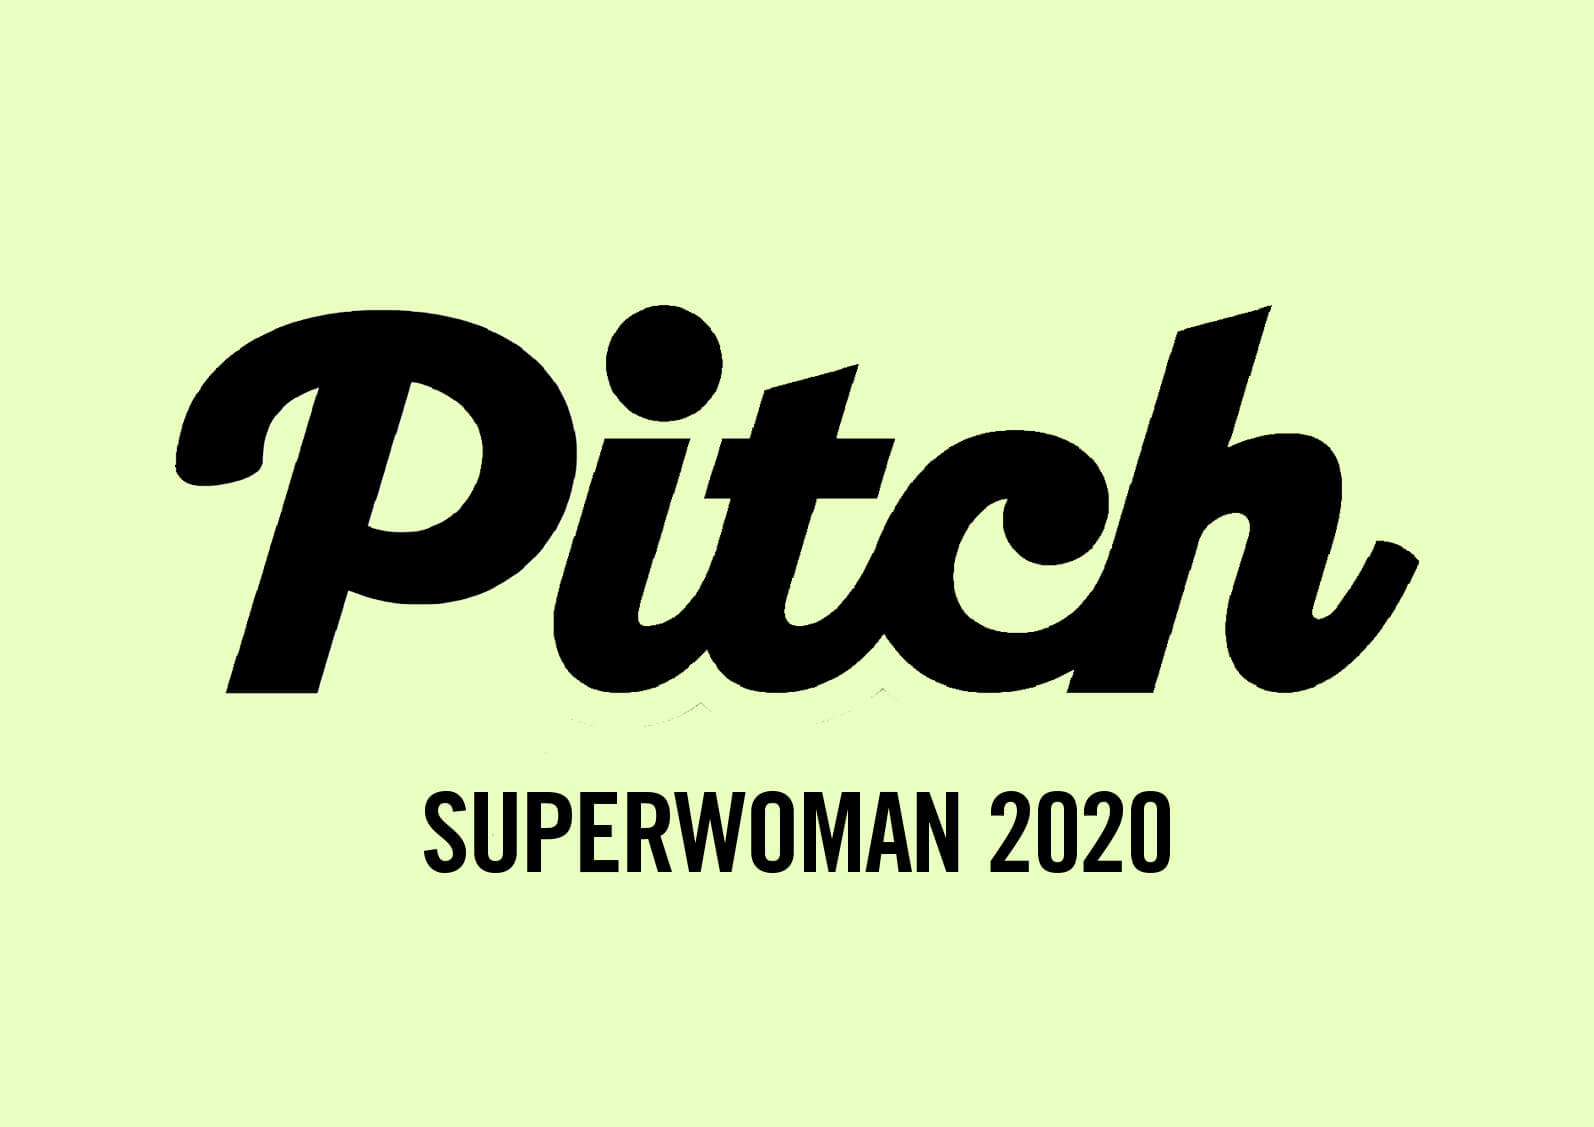 11_Pitch Superwoman 2020